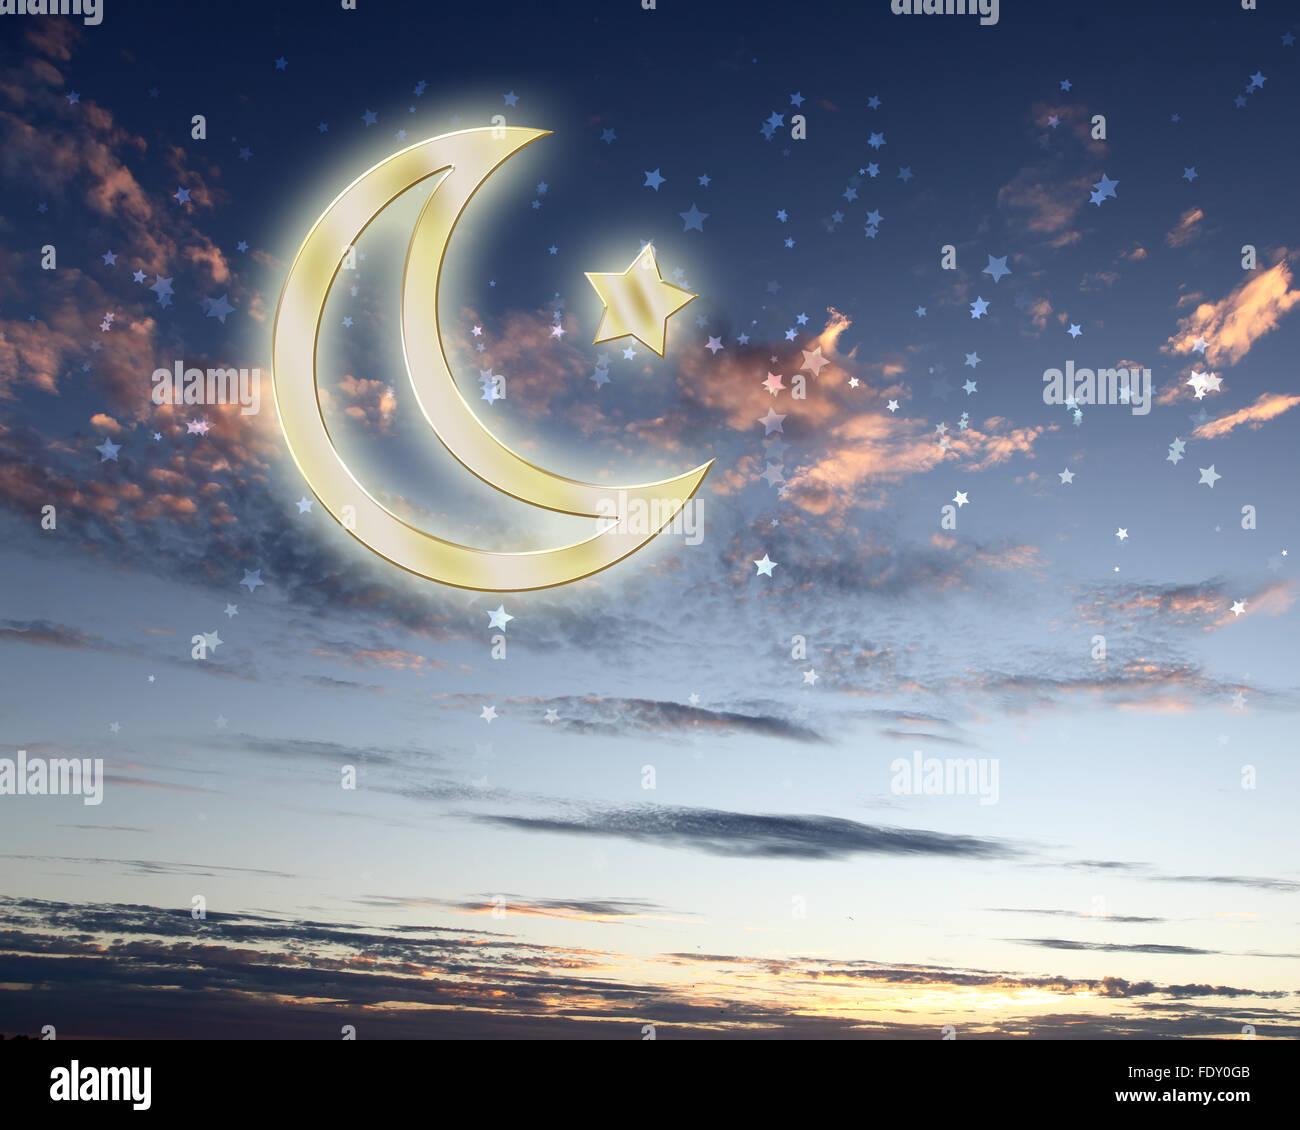 Symbols Of Islam Religion Against Bright Cloudy Sky Stock Photo